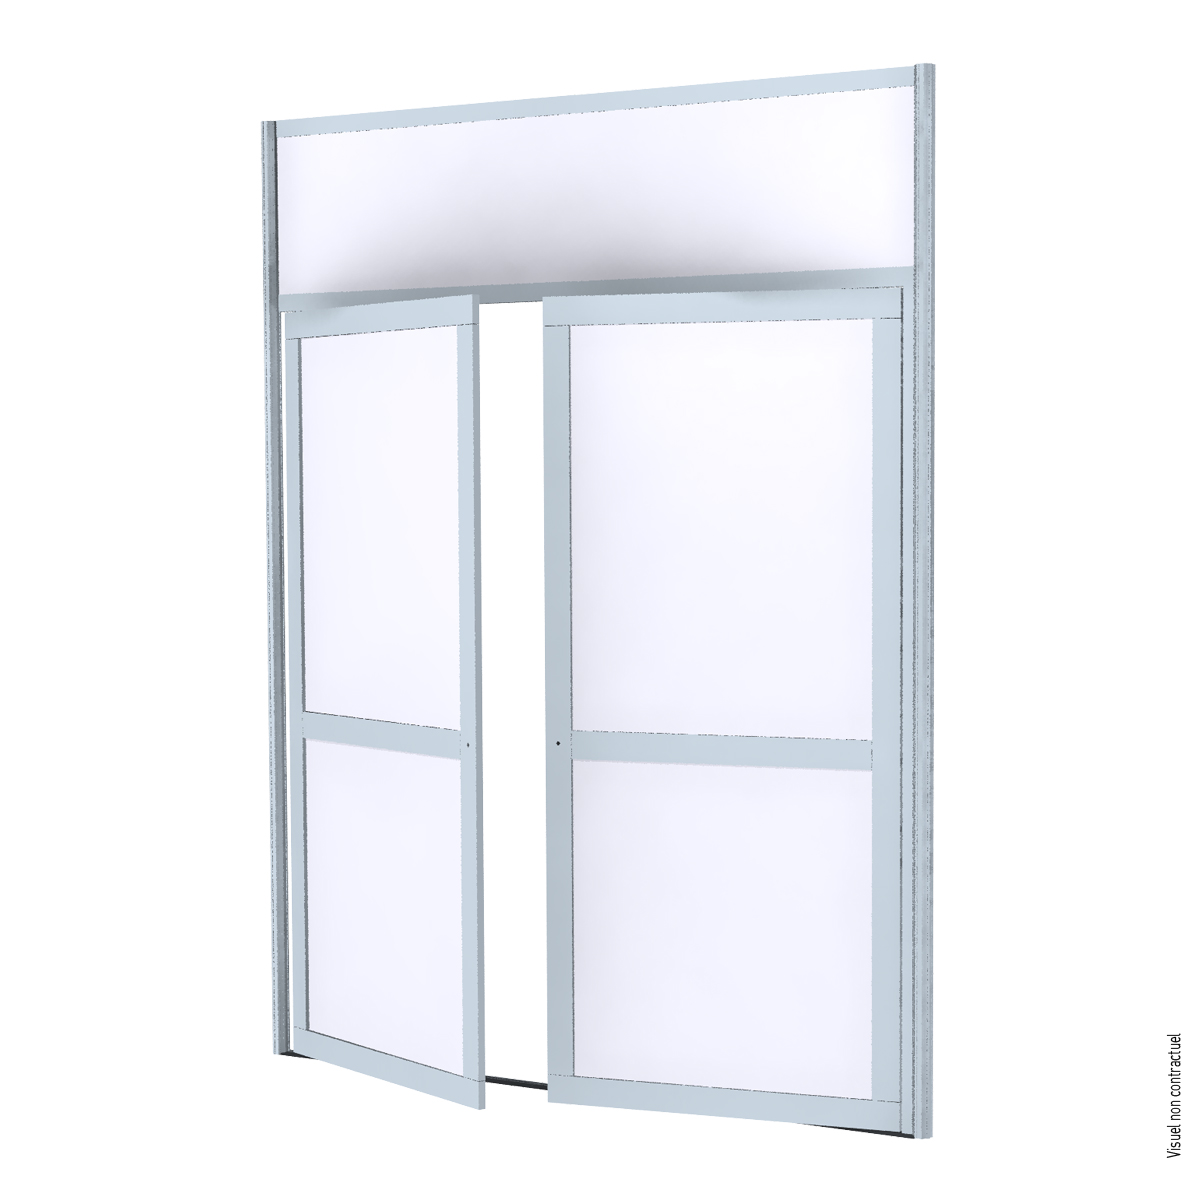 Double aluminum frame door with melamine infill - White